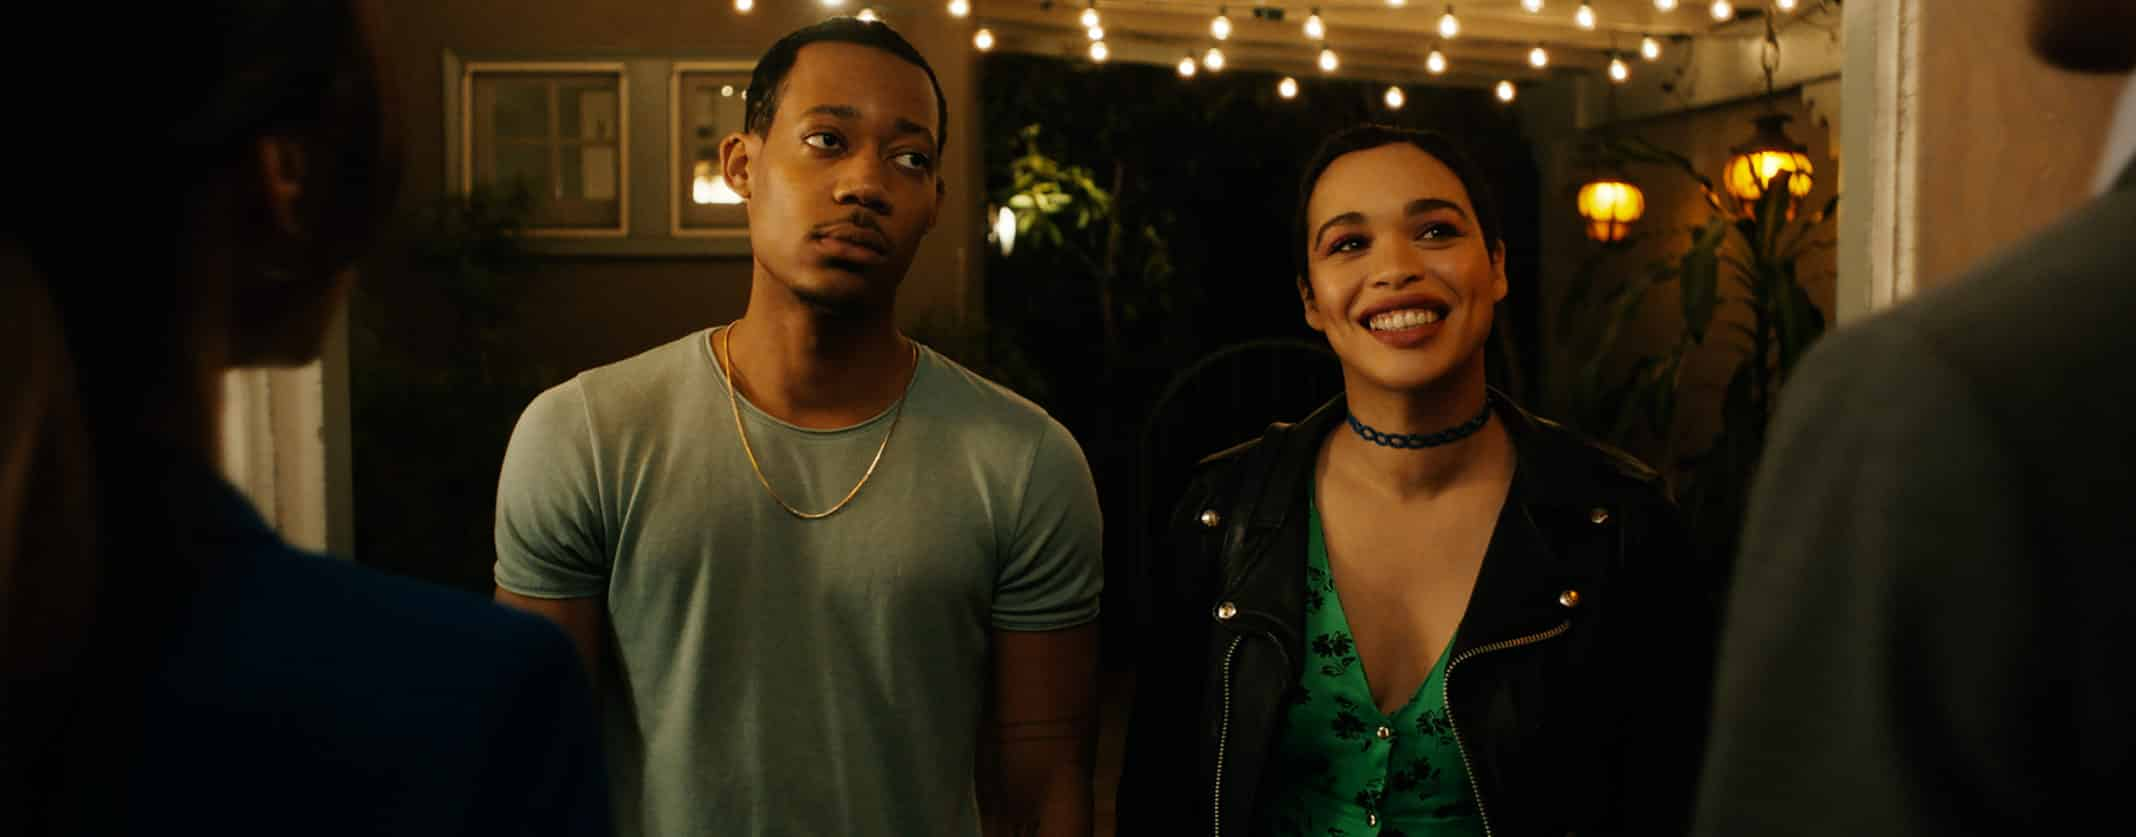 Paul (Tyler James Williams) seeming exasperated while Trina (Cleopatra Coleman) is excited.